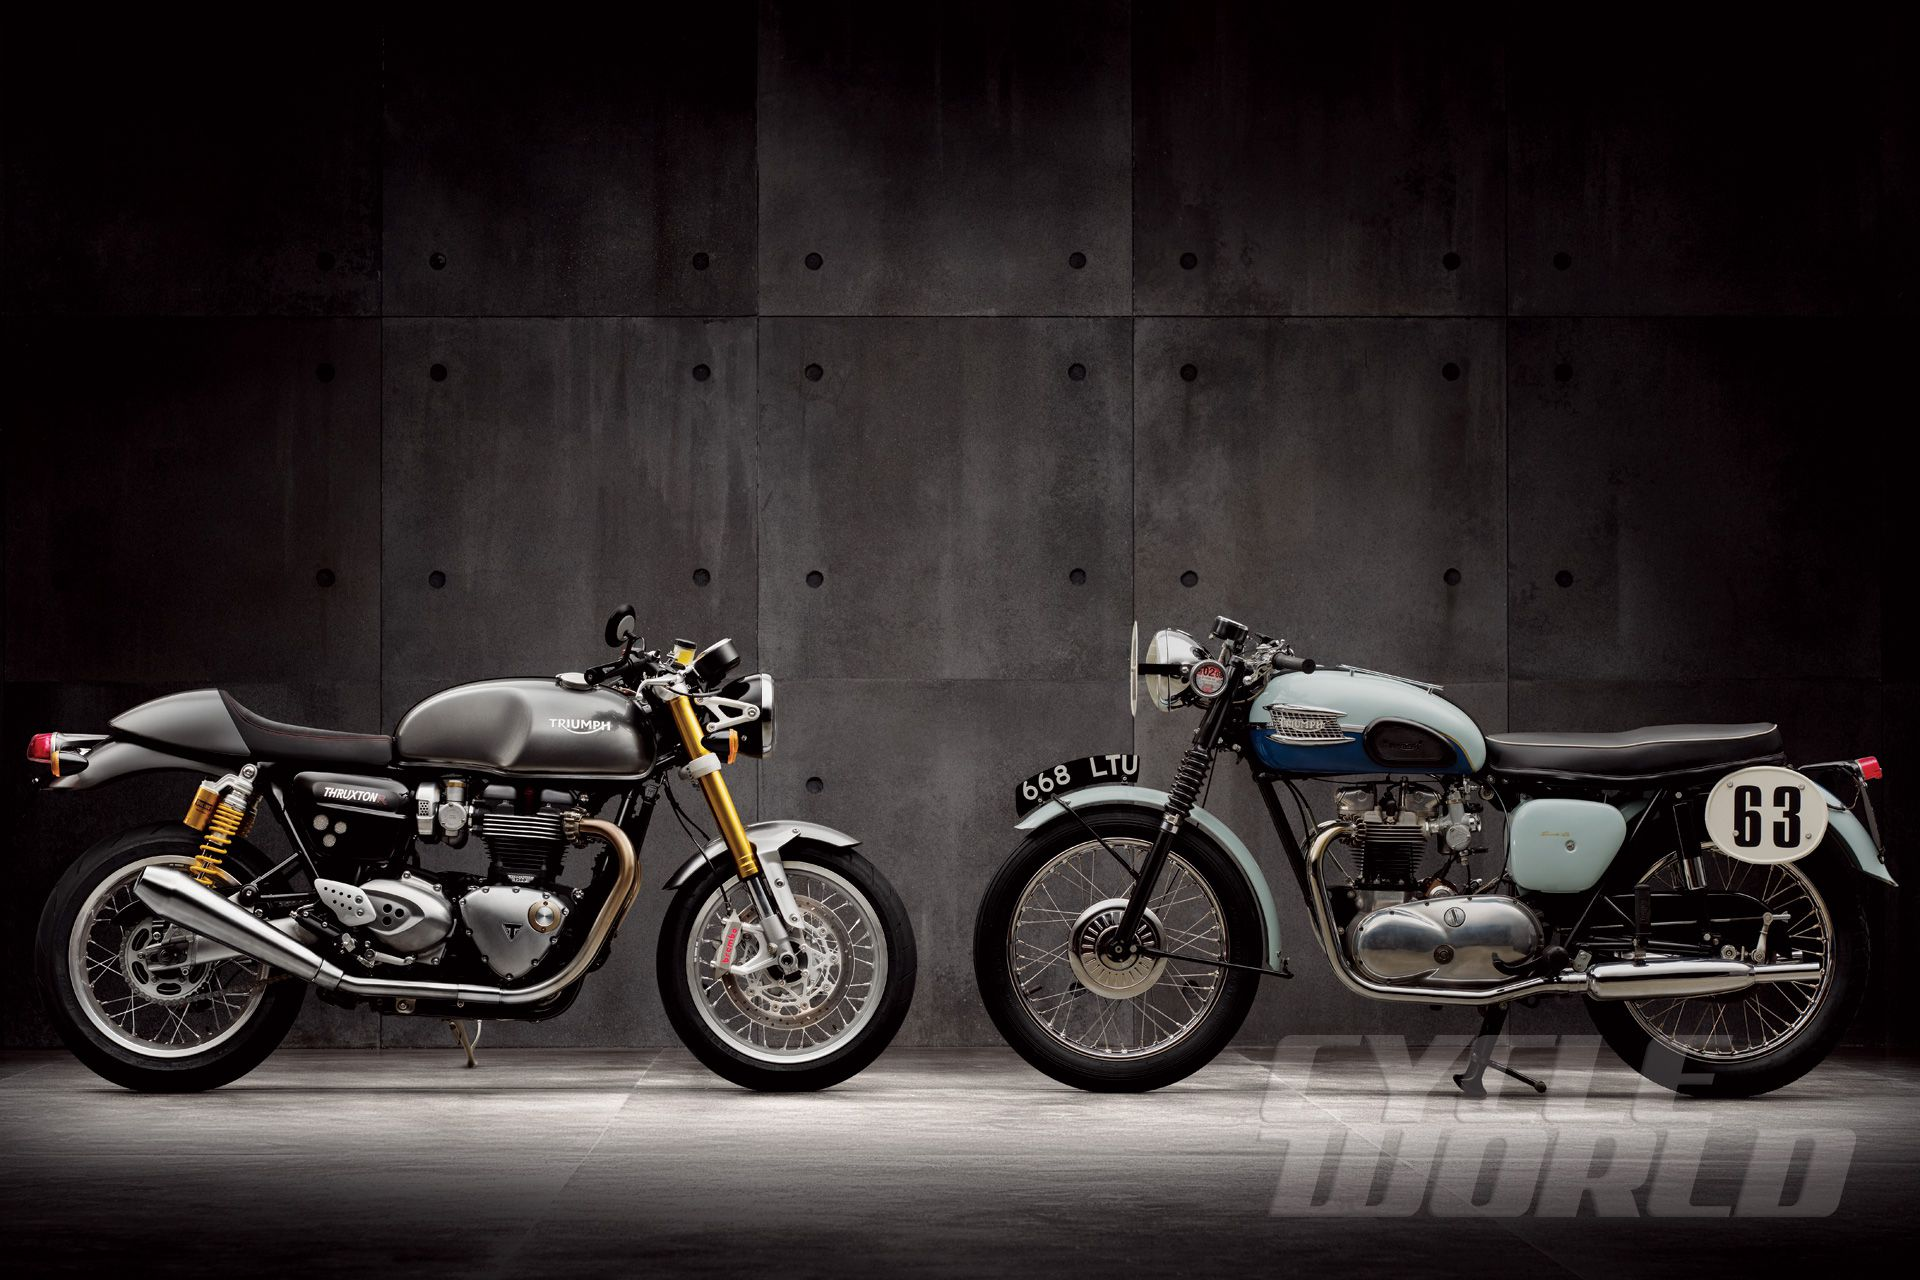 2016 Triumph Bonneville Thruxton and Thruxton R Motorcycle Review